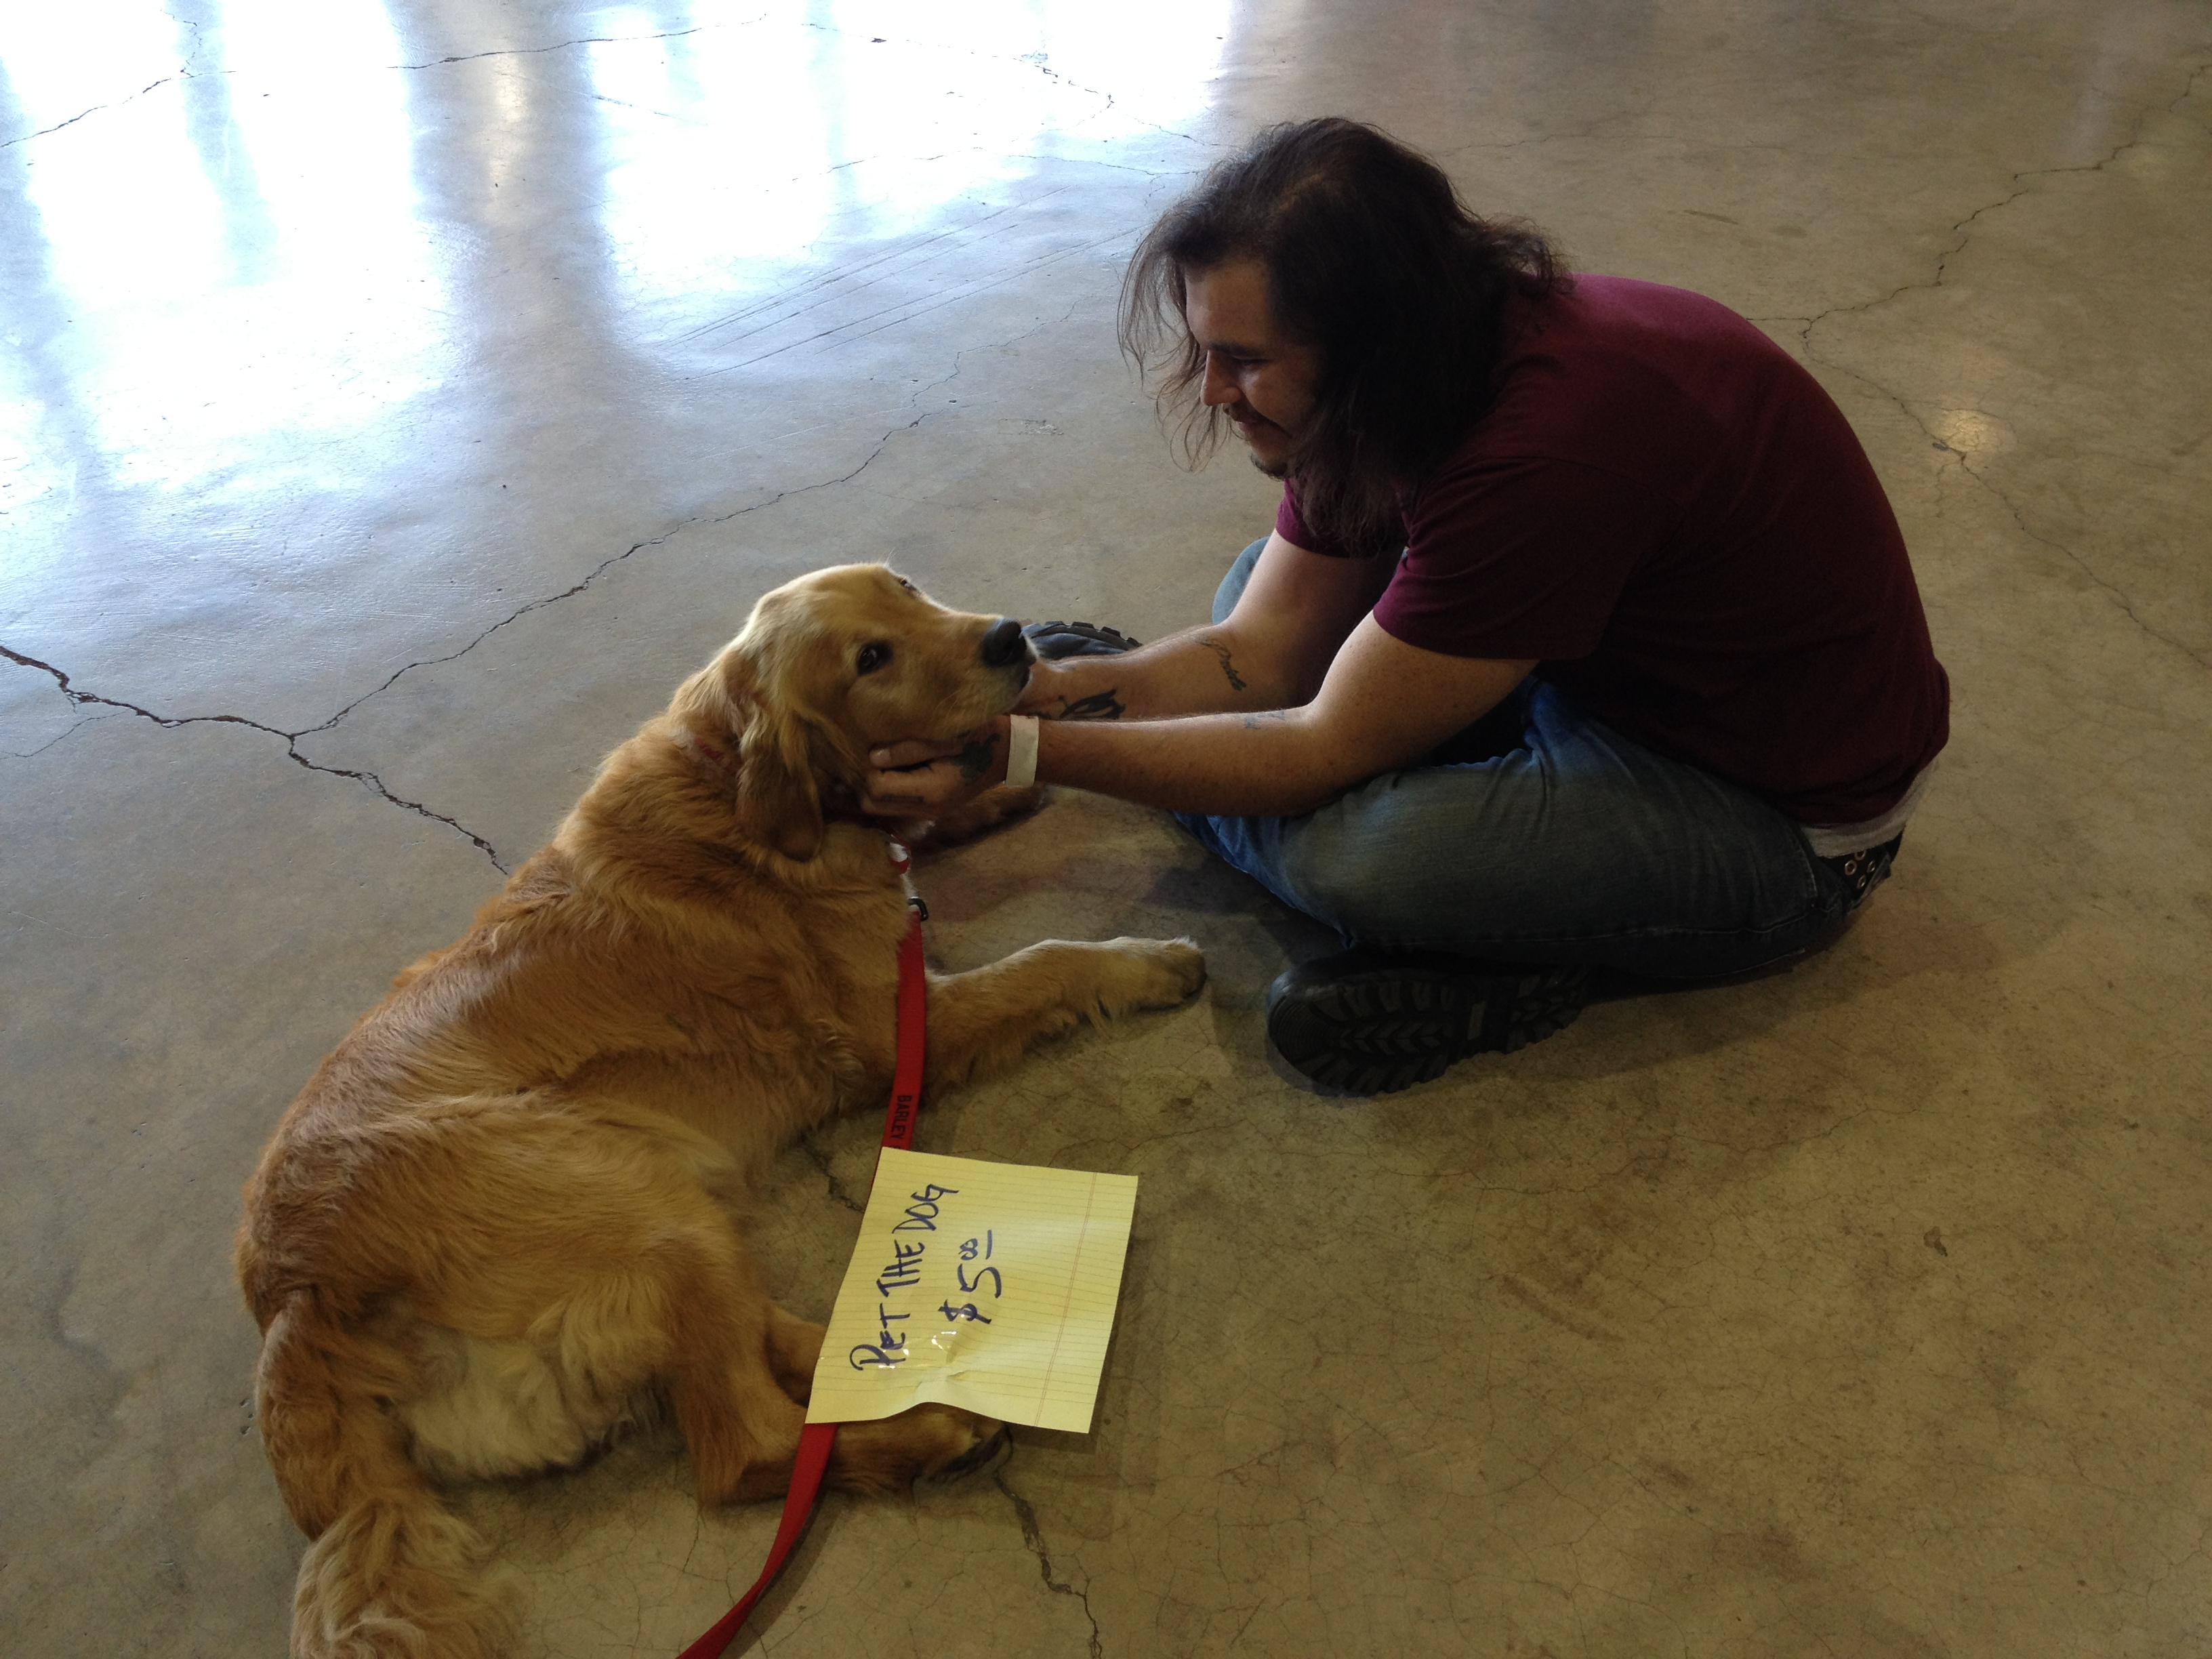 Several rally goers needed dog fixes